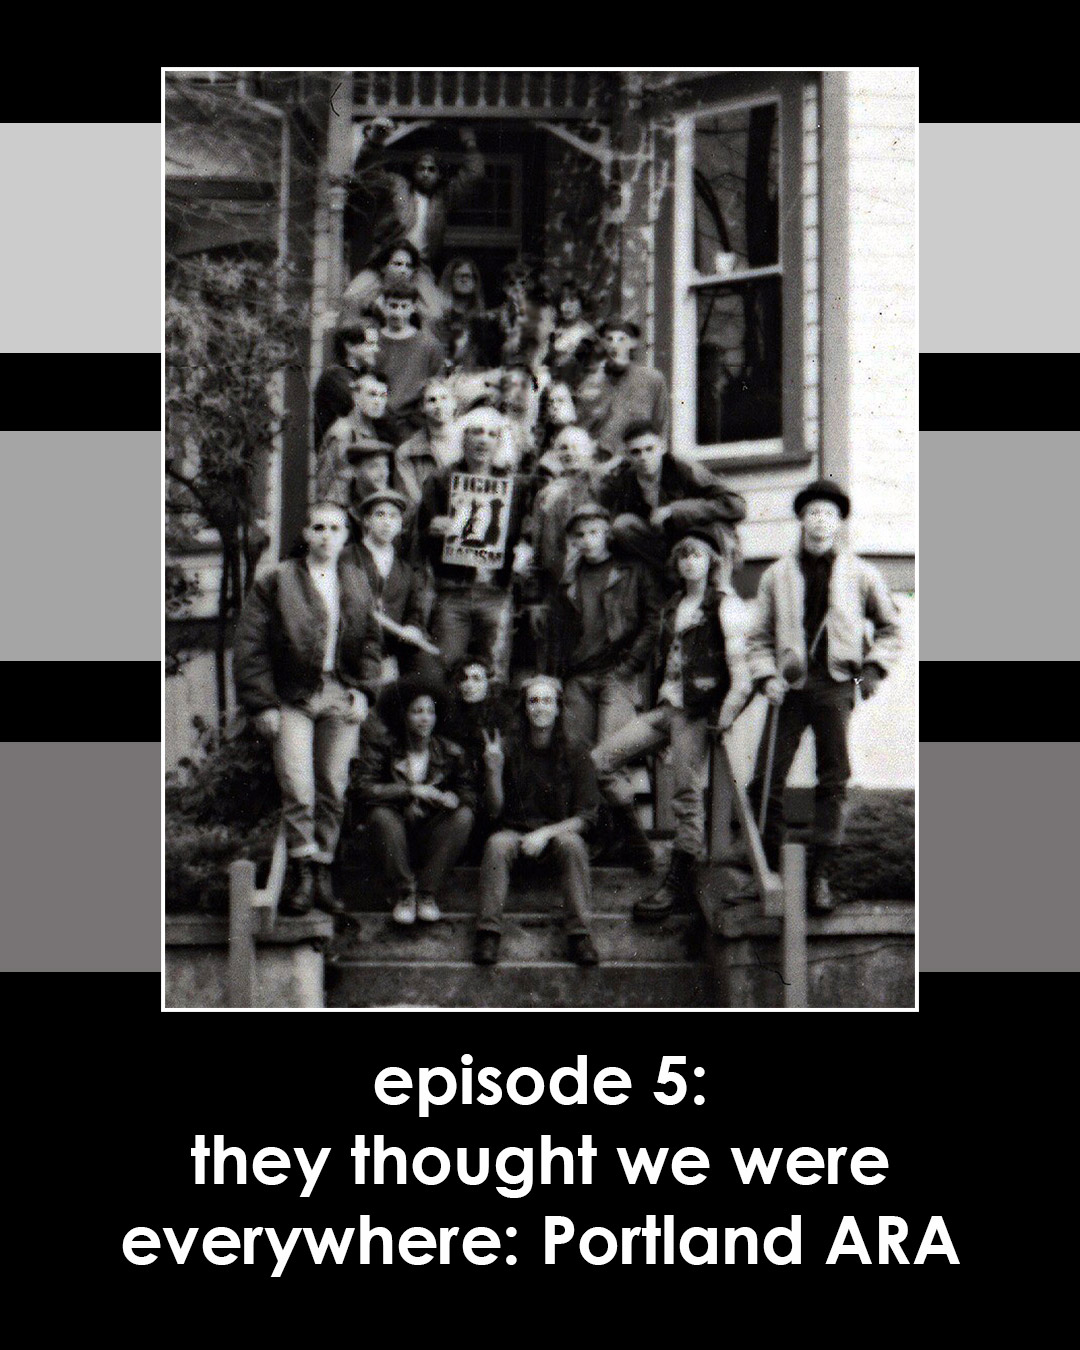 A poor quality image of a group of young people on a porch, with the words Episode Five: They Thought We Were Everywhere: the Portland ARA